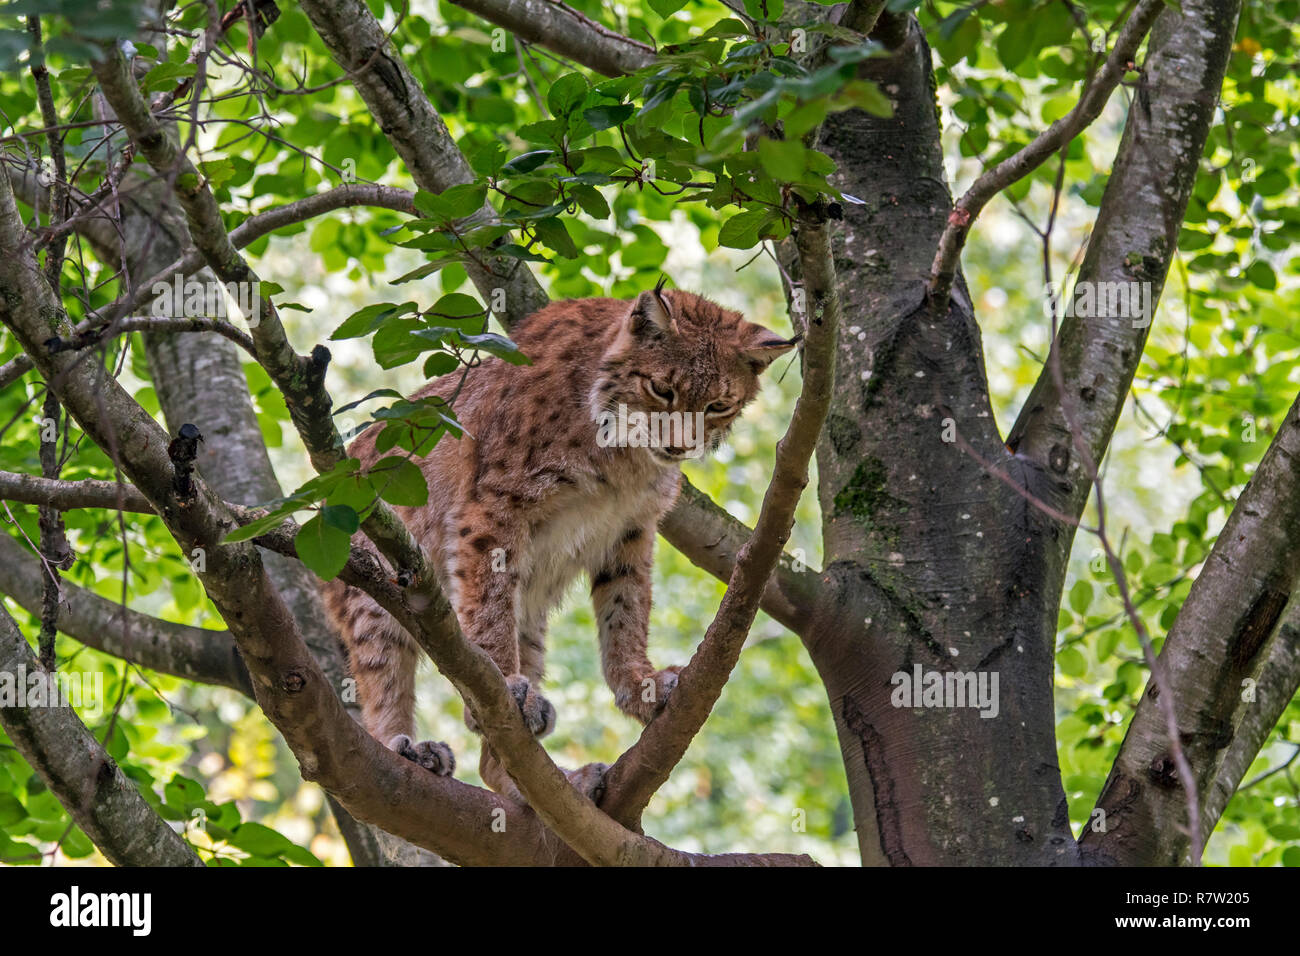 Eurasian lynx (Lynx lynx) looking down from branch in tree canopy	in forest - Stock Image